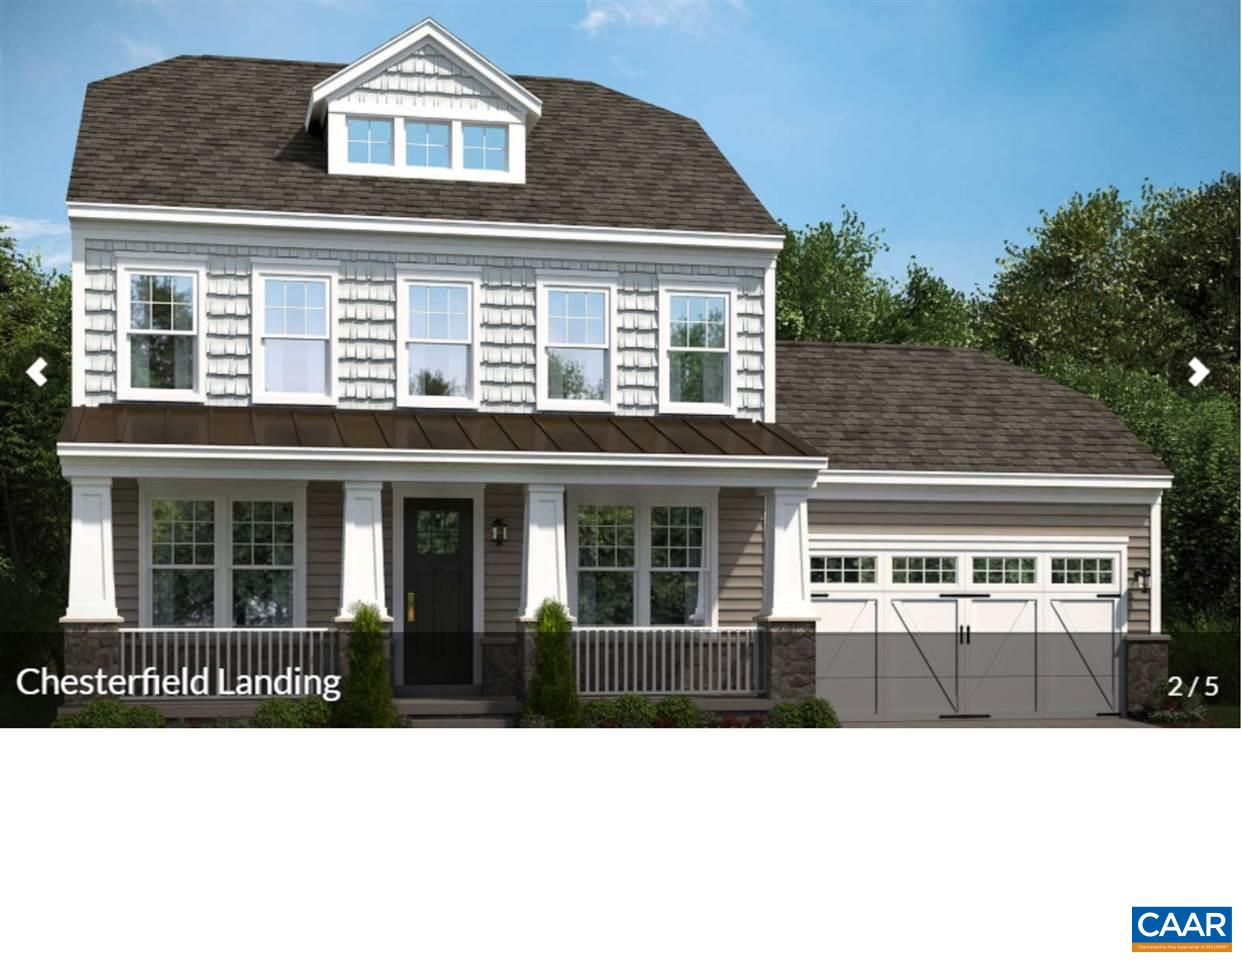 Homes For Sale In Chesterfield Va